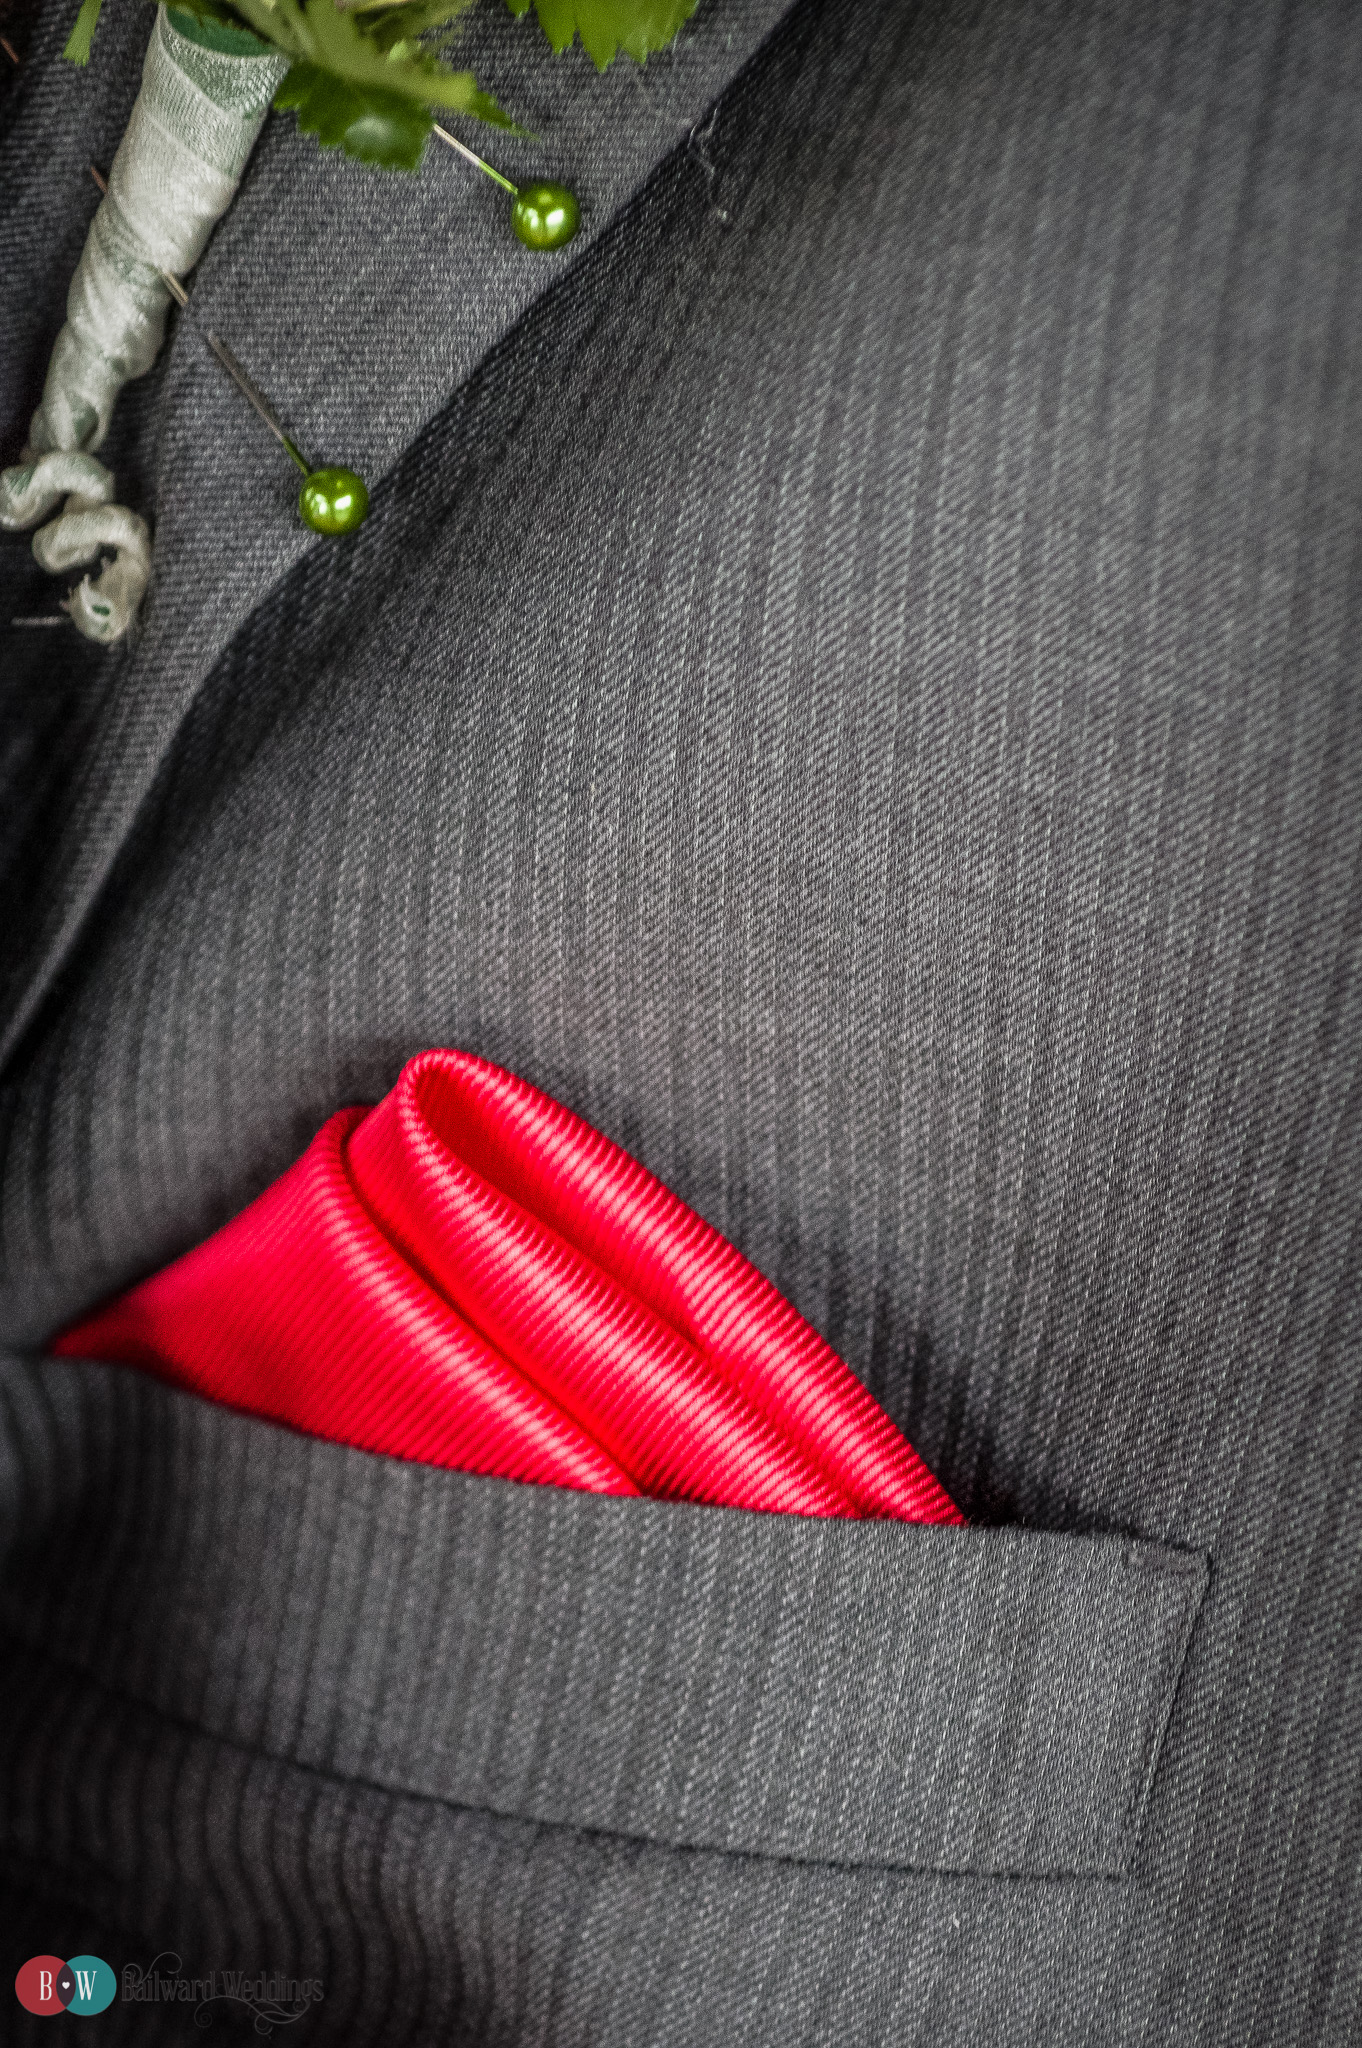 Groom with red pocket square